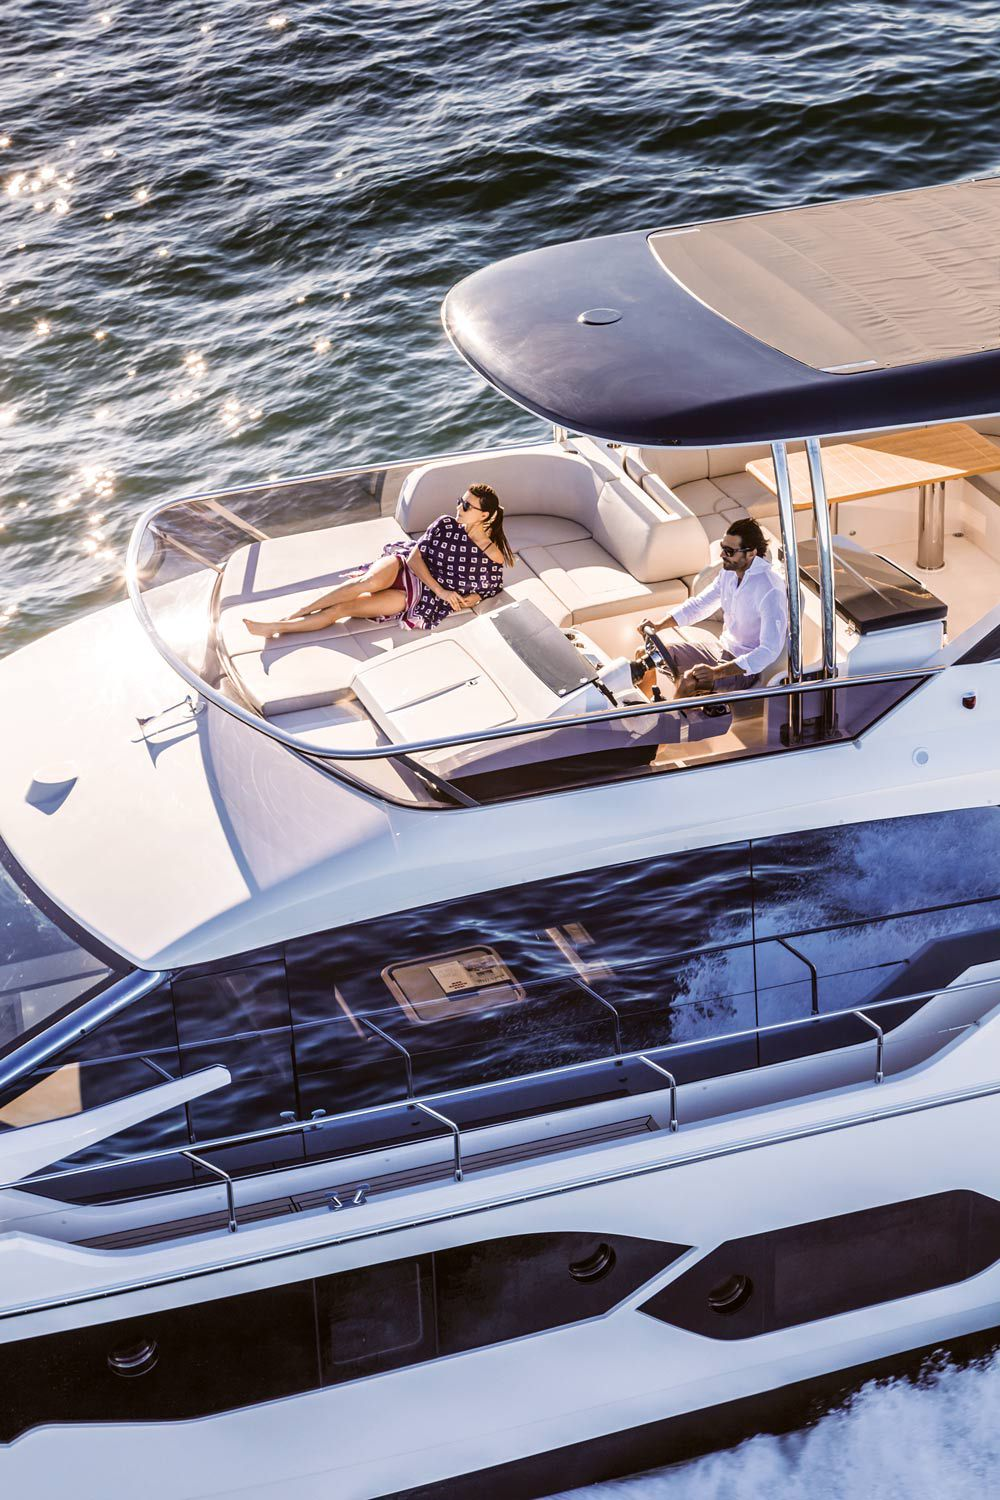 The Absolute 58 Fly's optional hardtop offers shade when desired while allowing for a good tan forward.